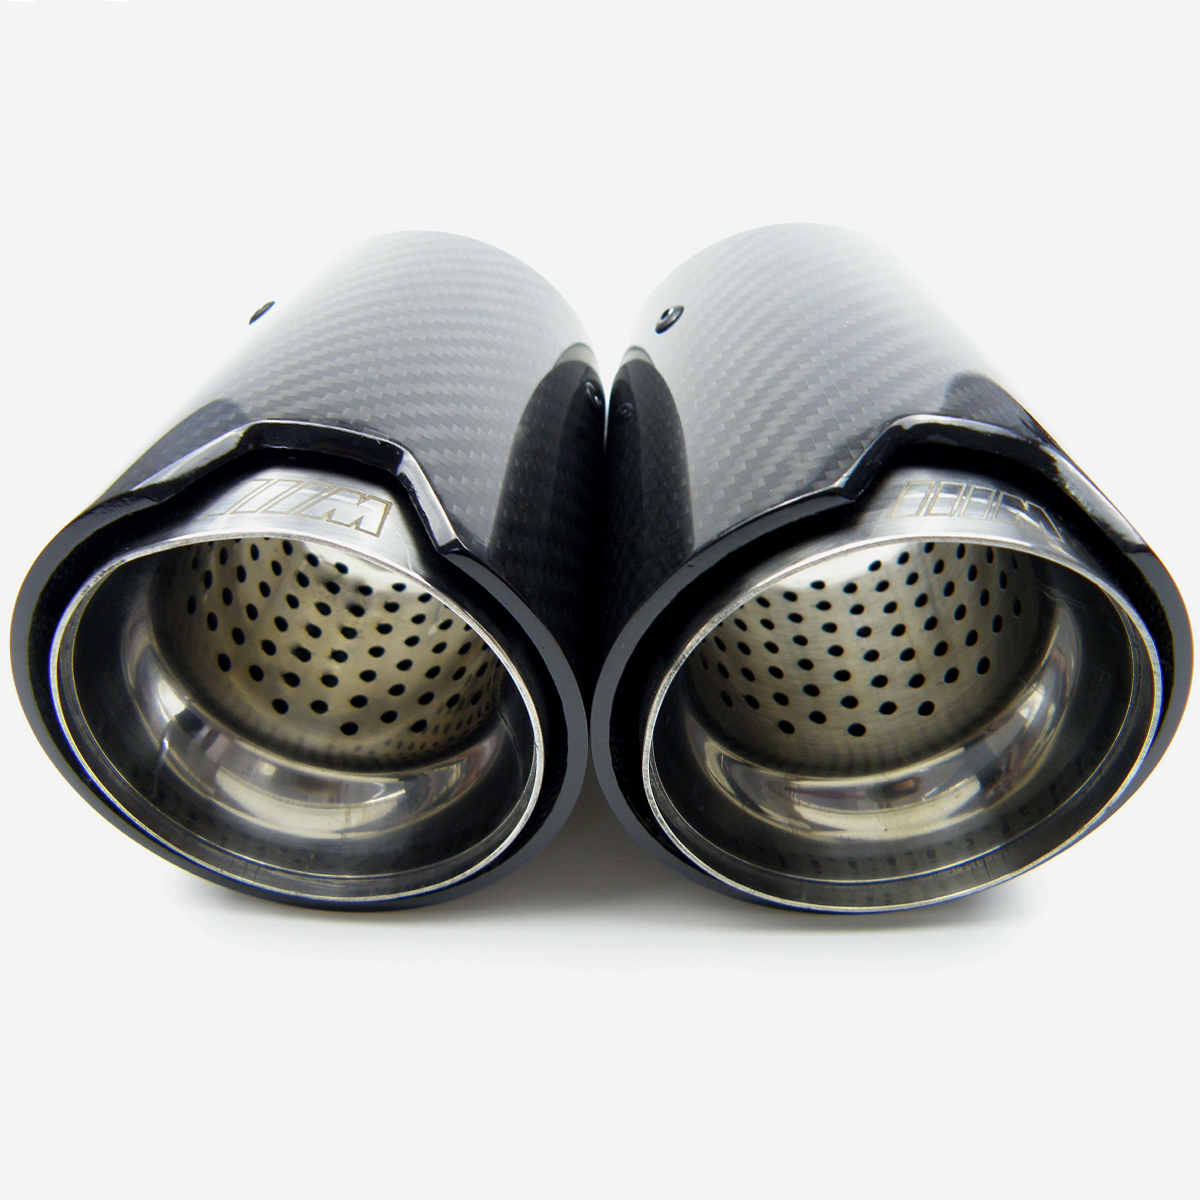 1pcs Universal M LOGO Carbon Fiber Exhaust tips For Performance Car 4